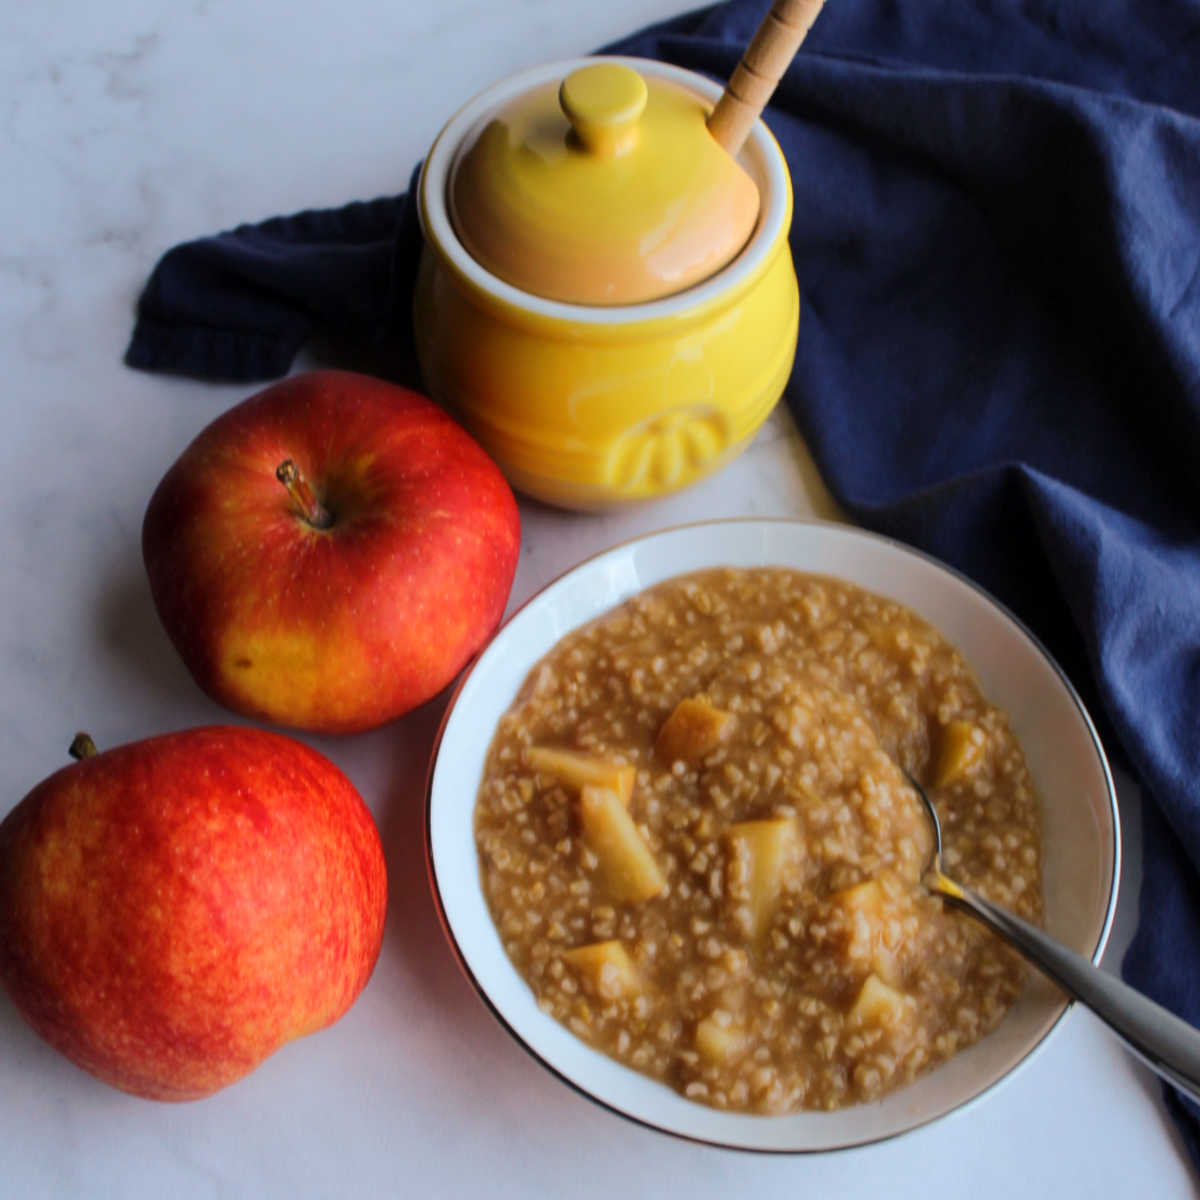 Loaded with apple flavor and that hearty steel cut oatmeal chew, this apple pie oatmeal is sure to be a favorite fall breakfast.  Grab a spoon and dig in!